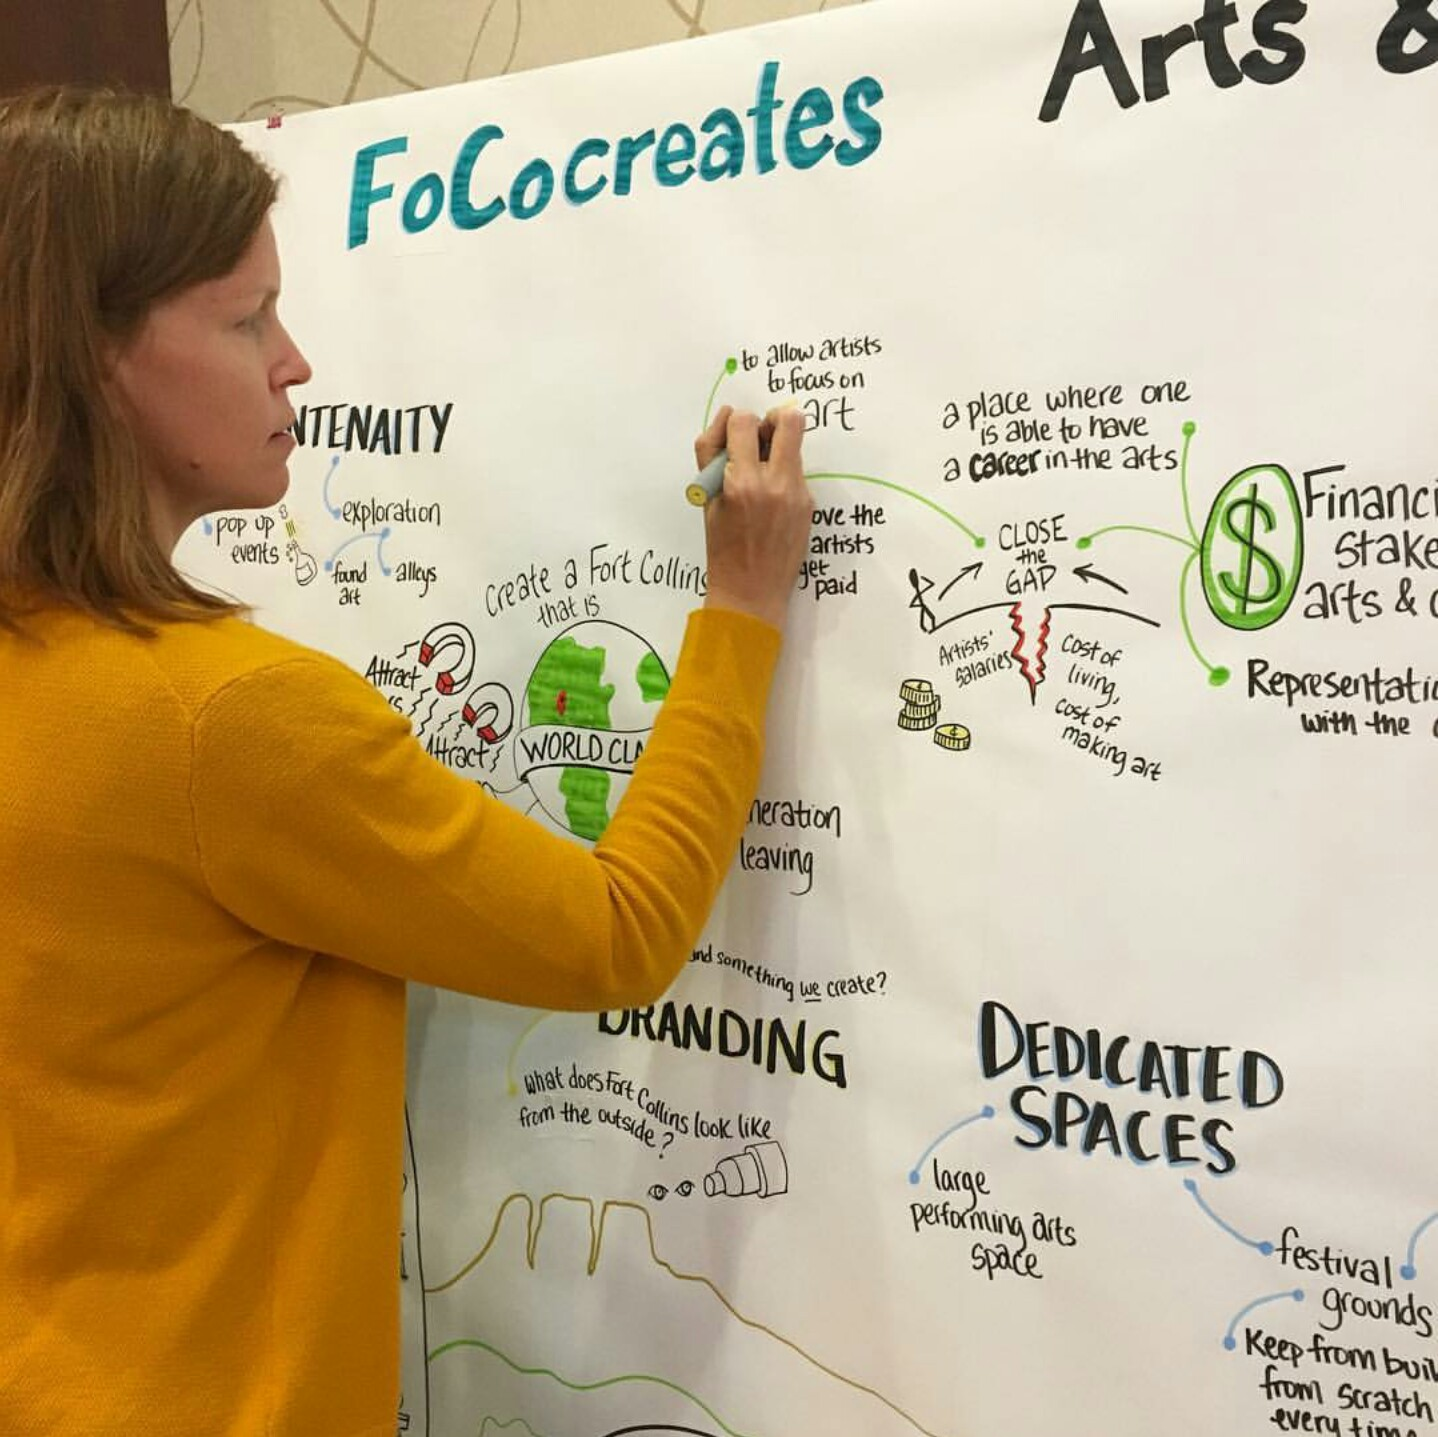 FoCocreates Graphic Recording in action.